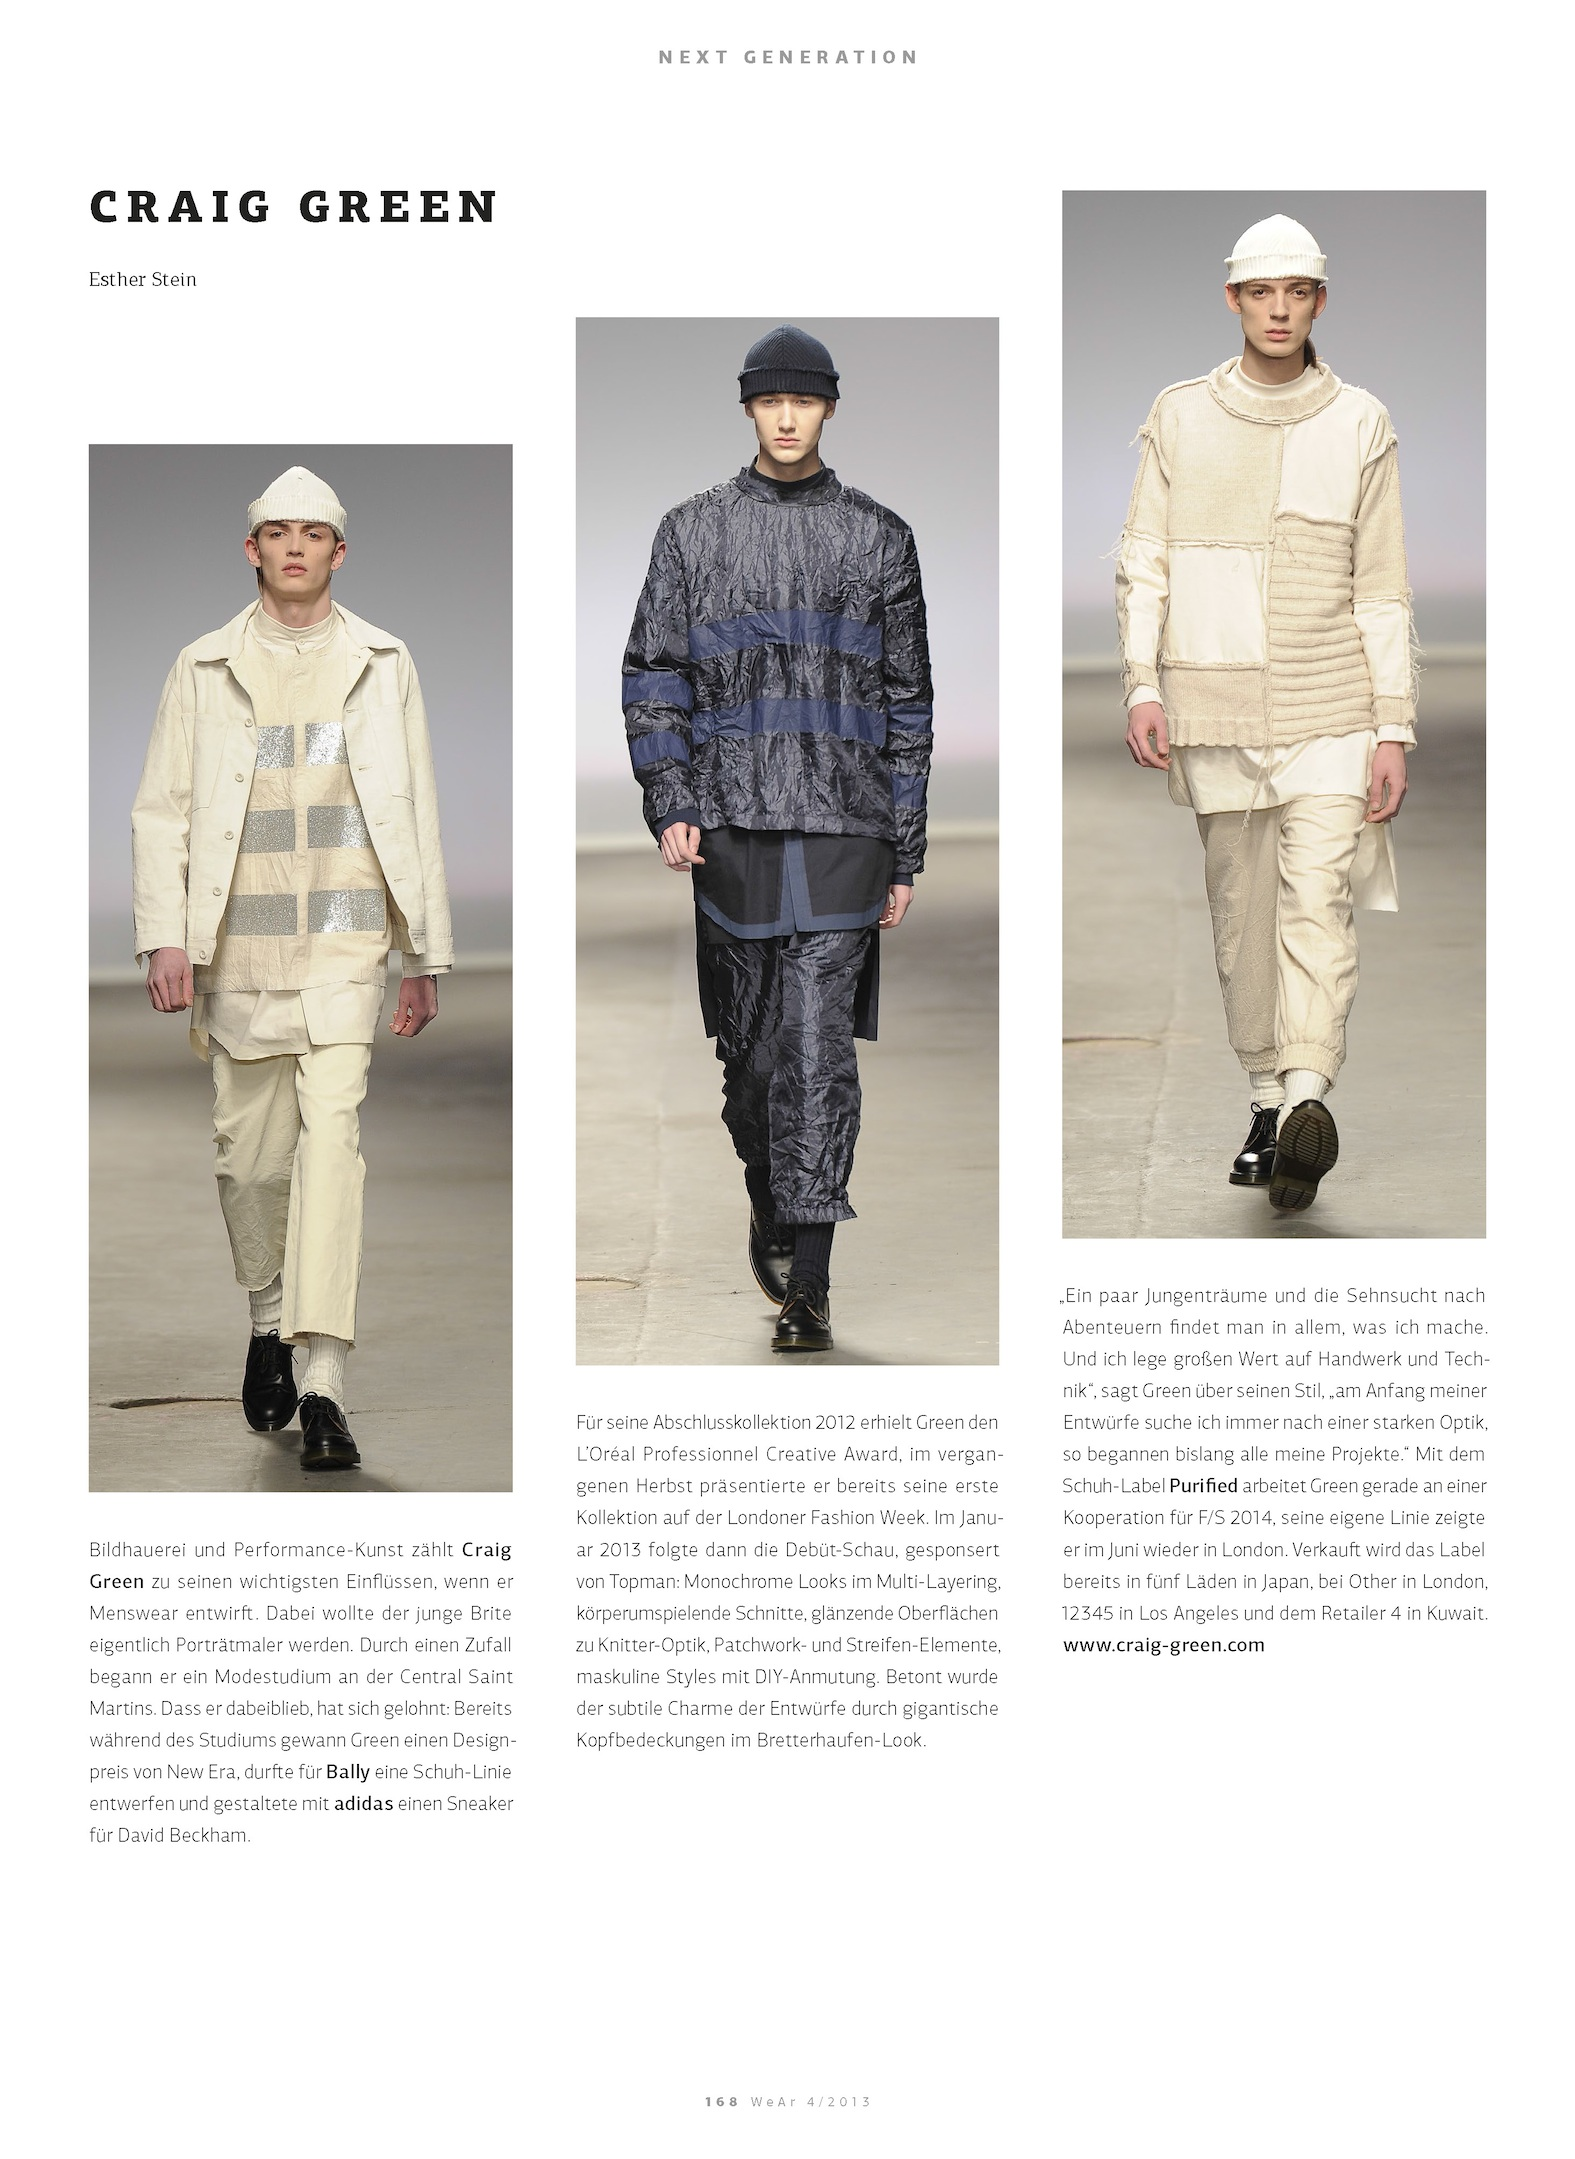 Men's Fashion: Craig Green, WeAr_04_2013